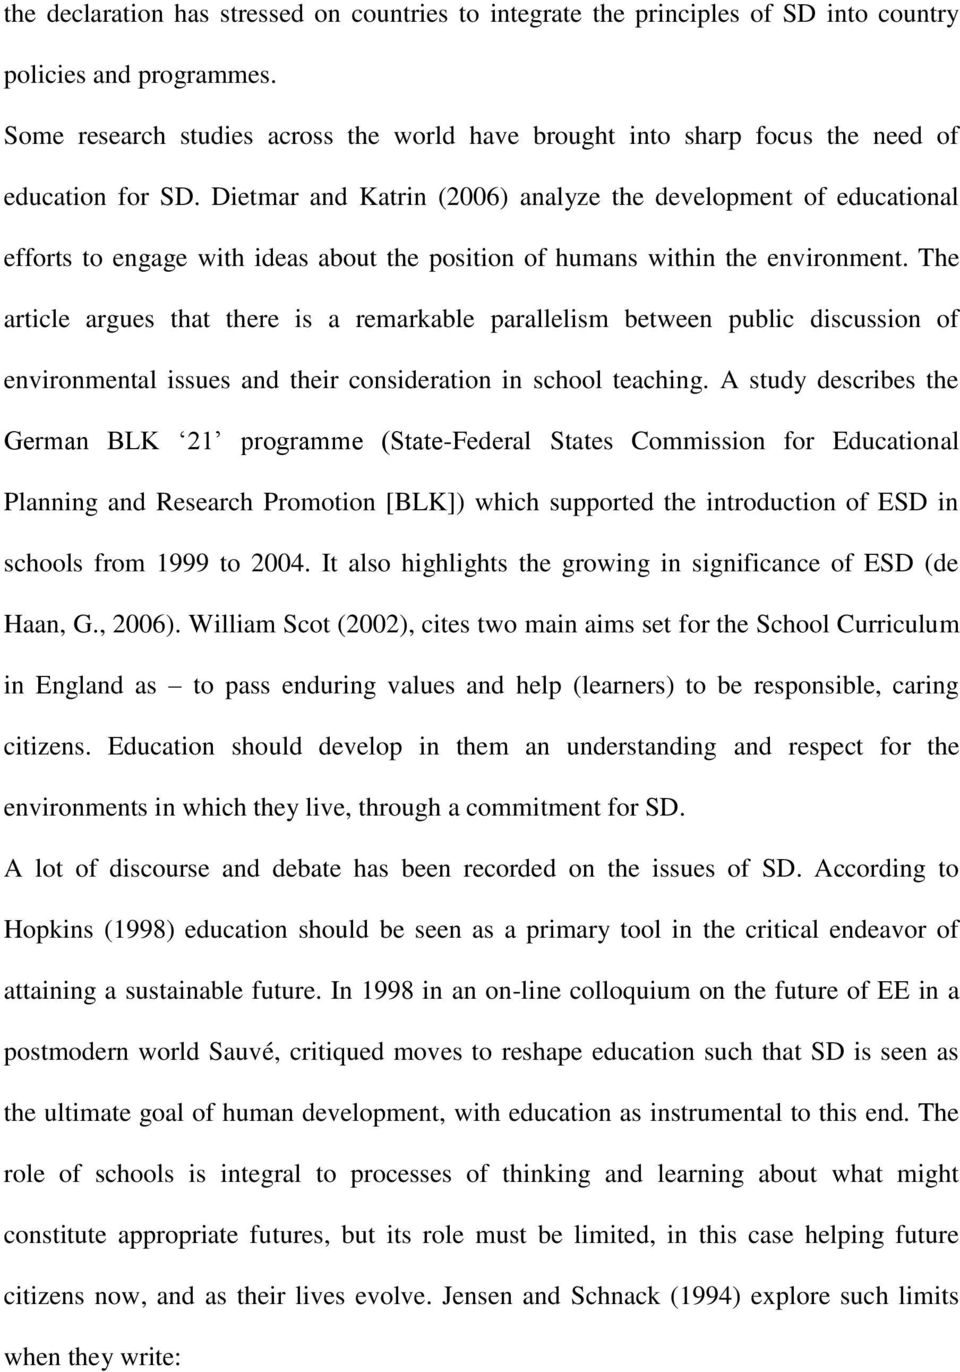 Dietmar and Katrin (2006) analyze the development of educational efforts to engage with ideas about the position of humans within the environment.